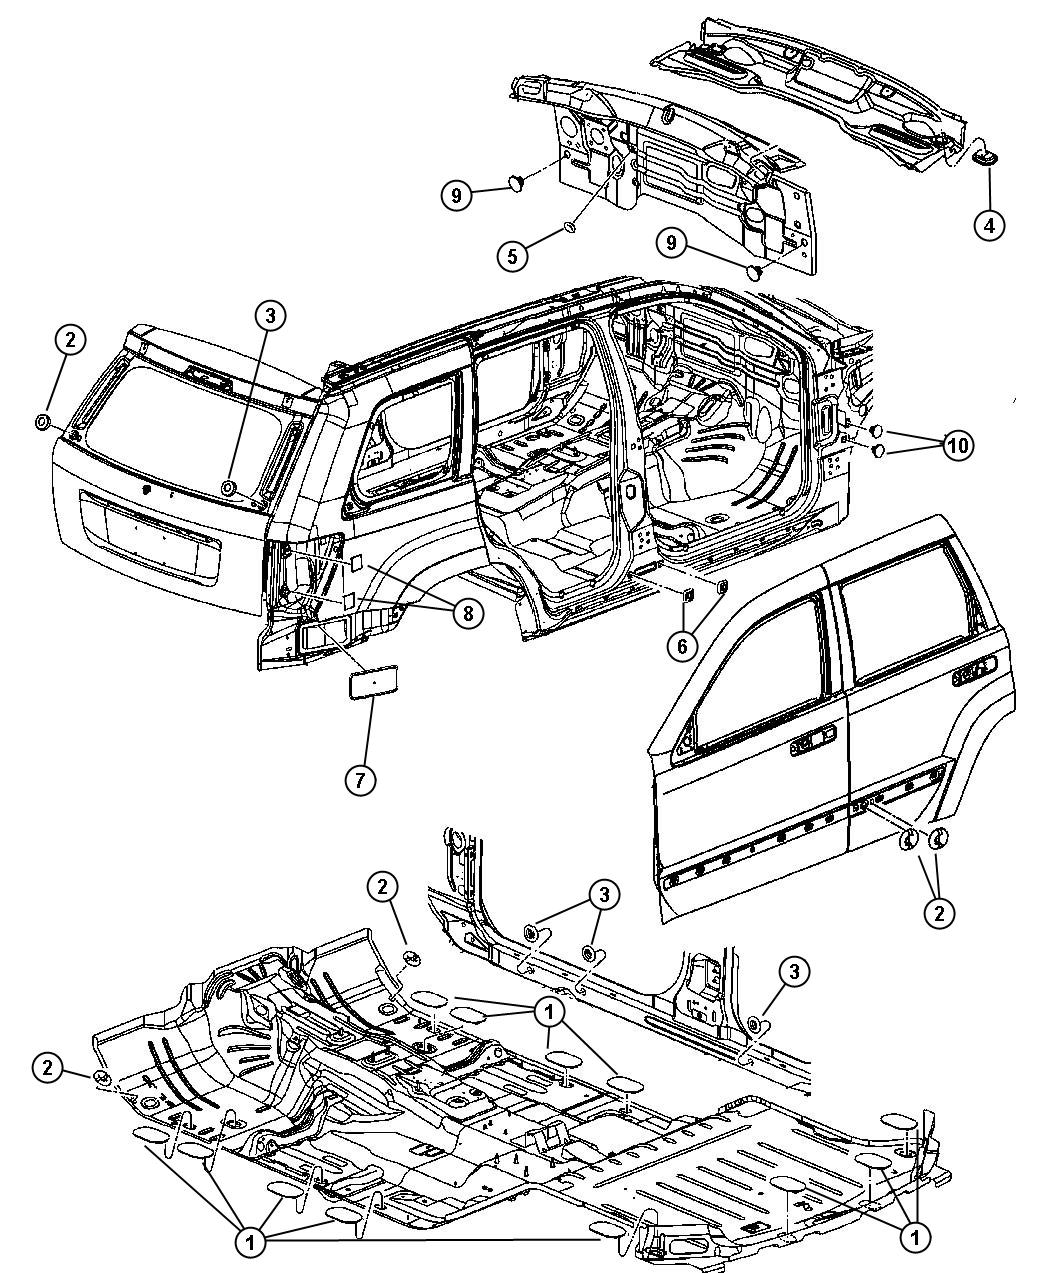 1986 mazda b2000 ignition wiring diagram lg tv circuit pdf 87 b2200 engine auto